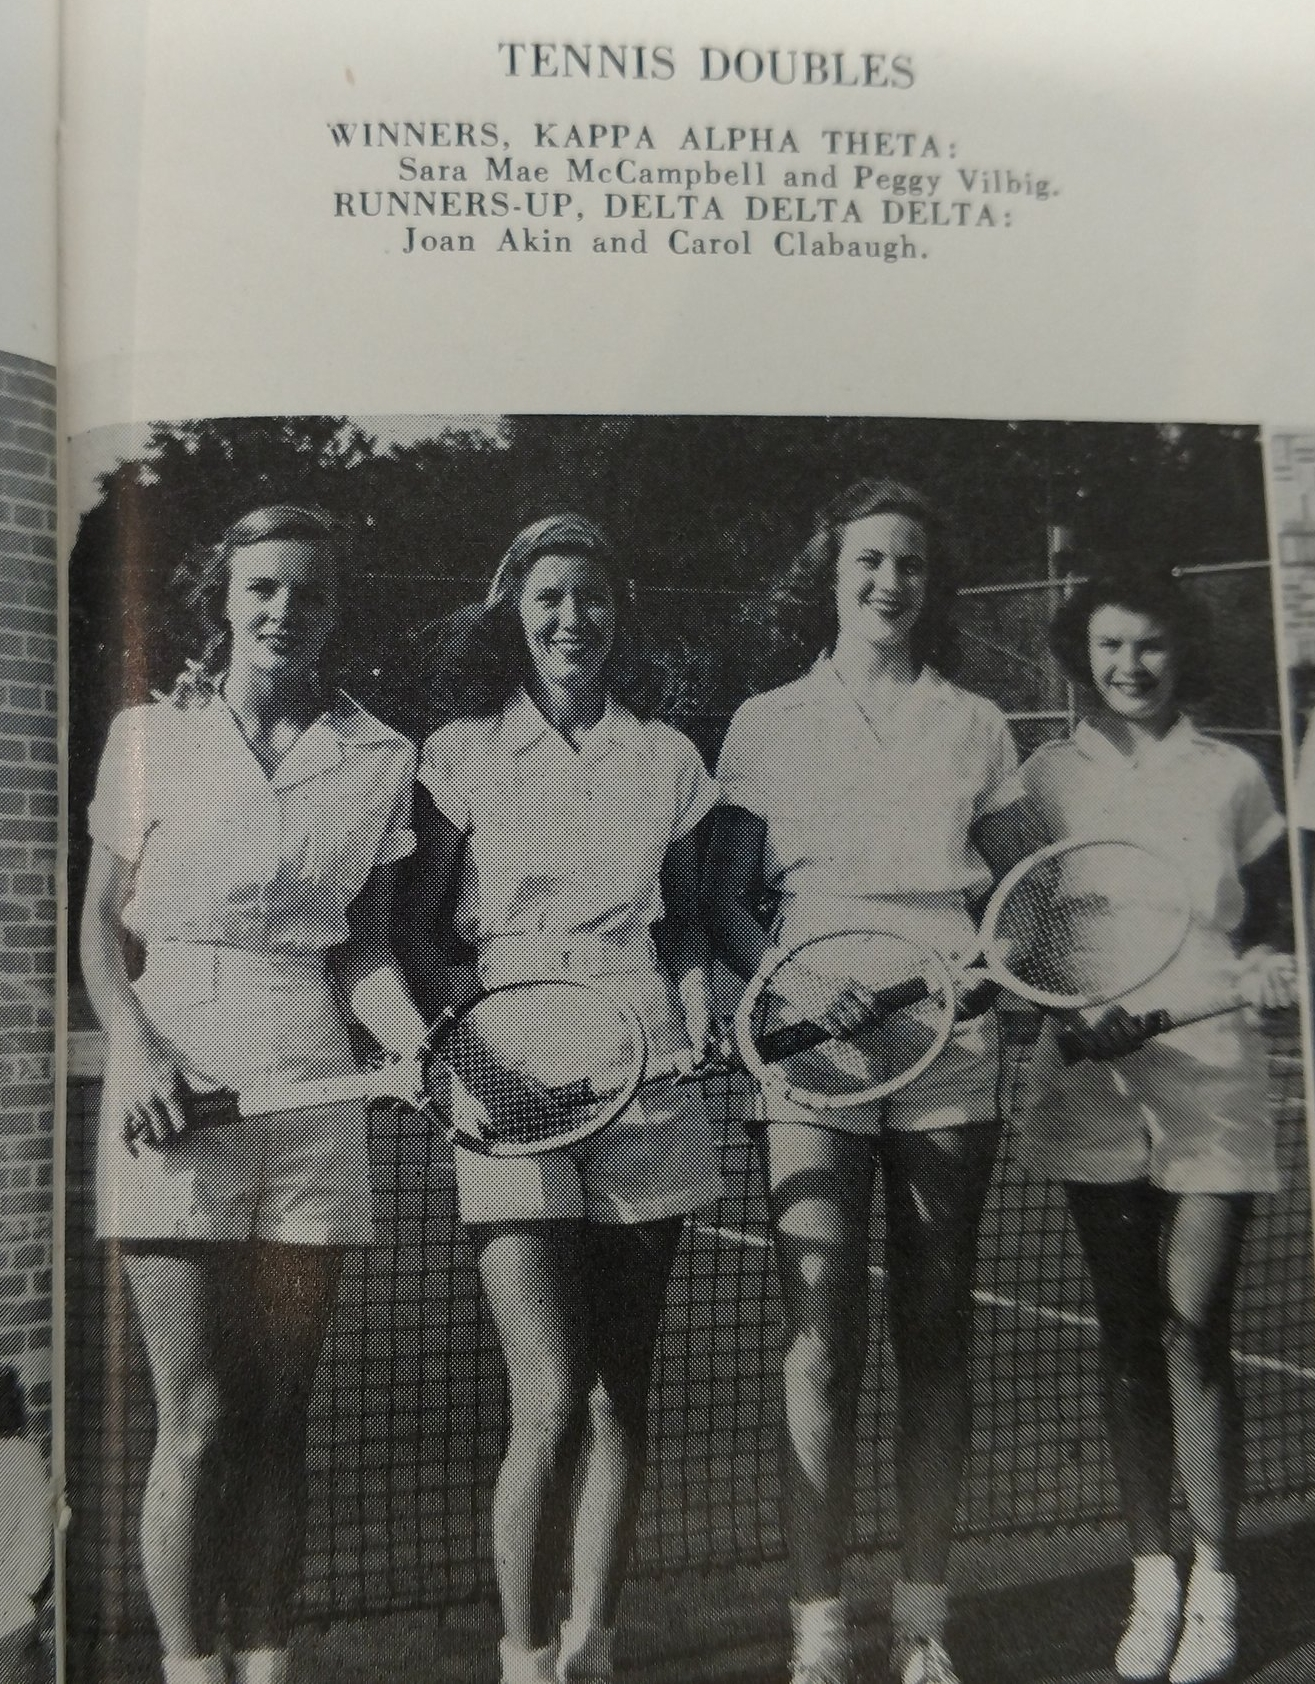 Copy of Winners doubles tennis Sara Mae McCampbell and Peggy Vilbig - Runners up Joan Akin and Carol Clabaugh